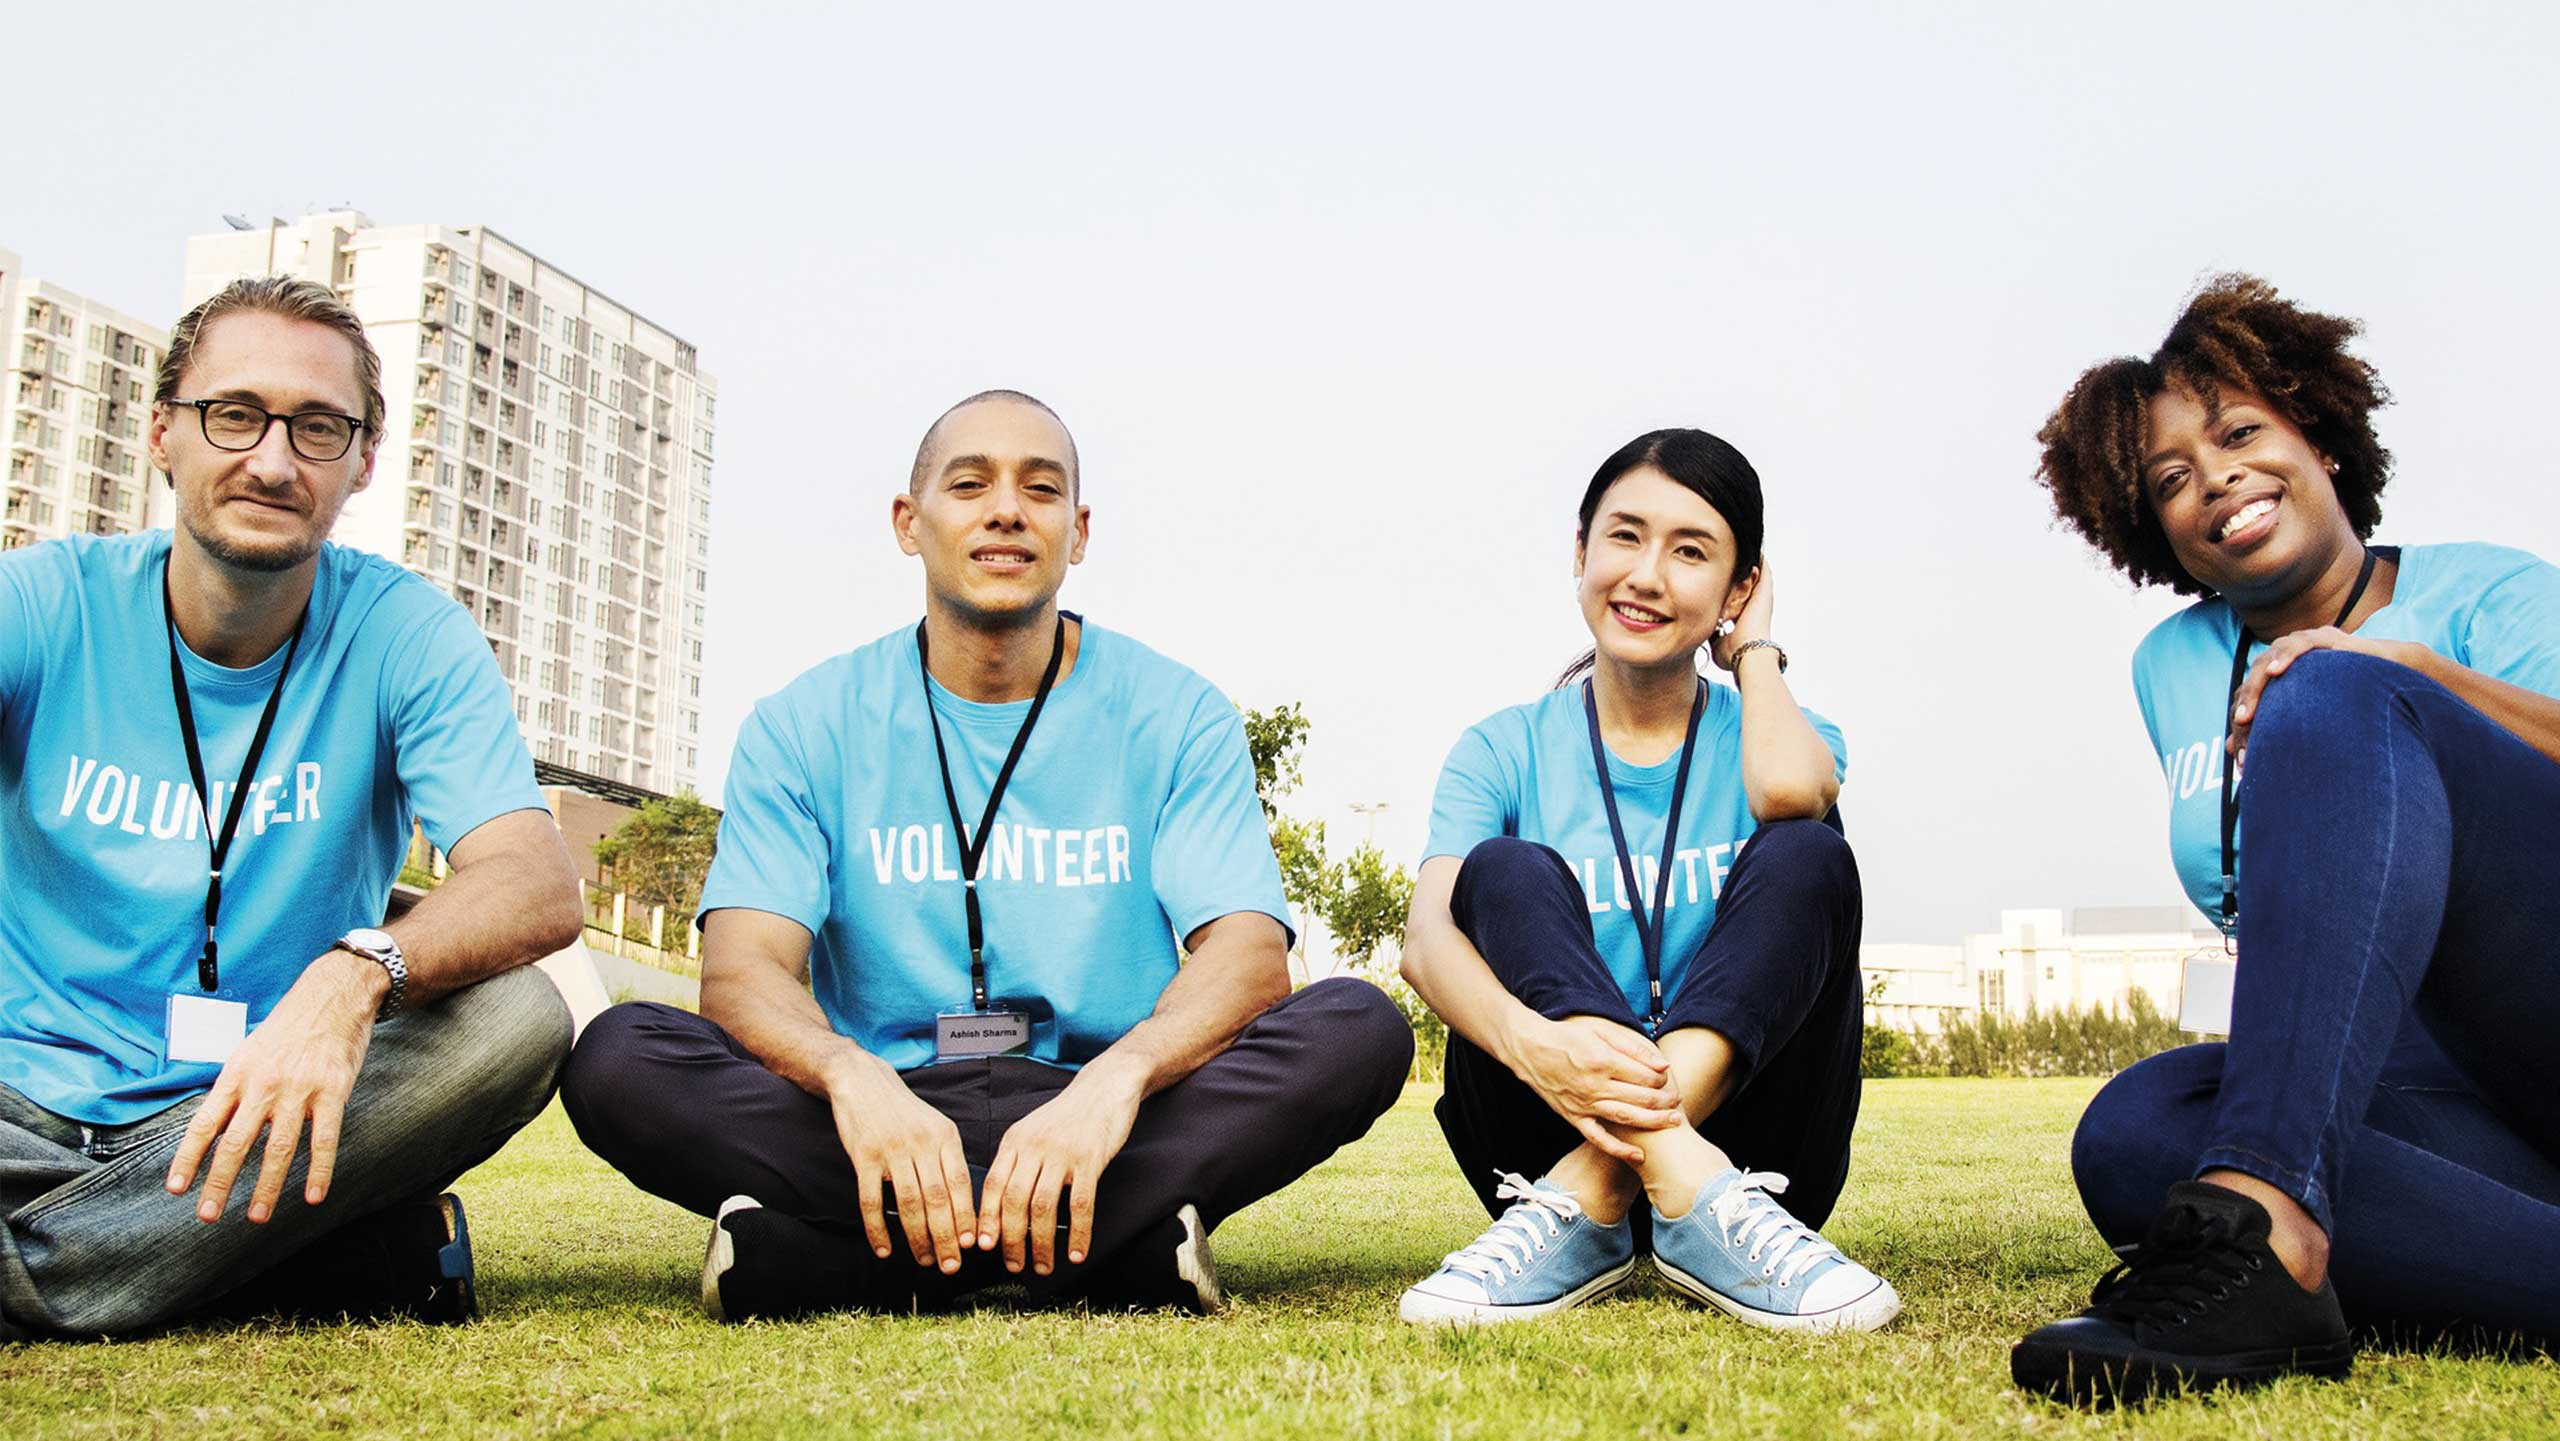 image of volunteers with matching t-shirts sat on some grass facing the camera